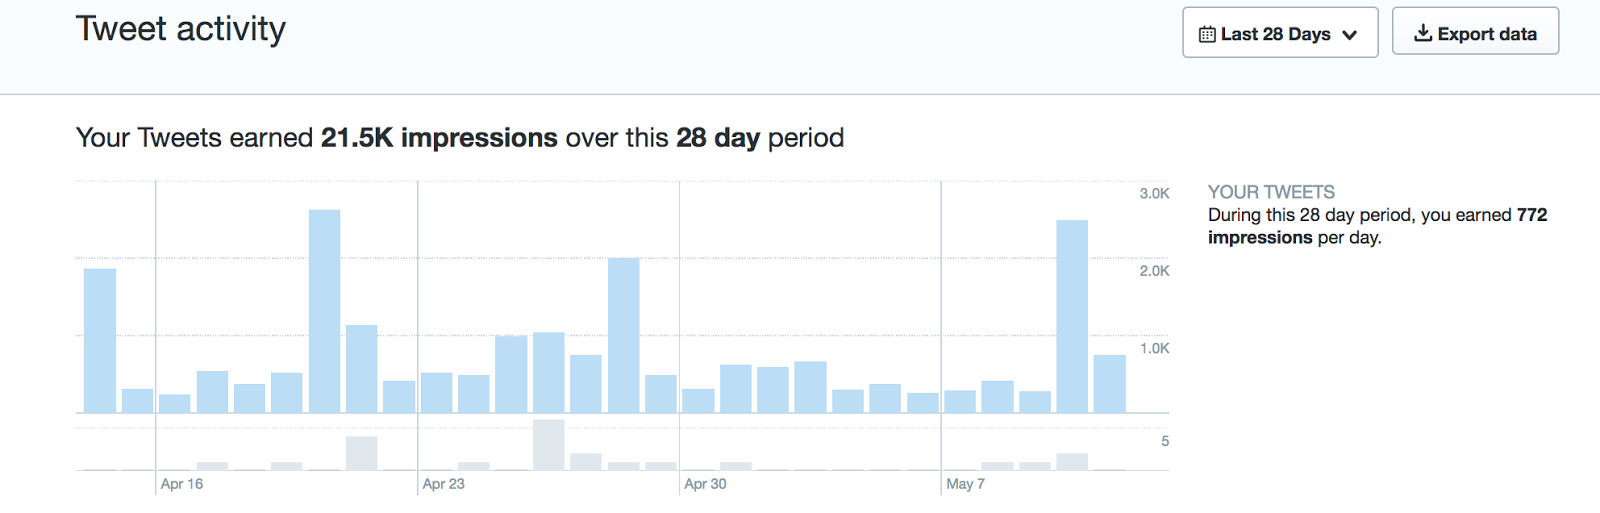 It shows how many earned impressions you have over a 28-day period as well as per day.